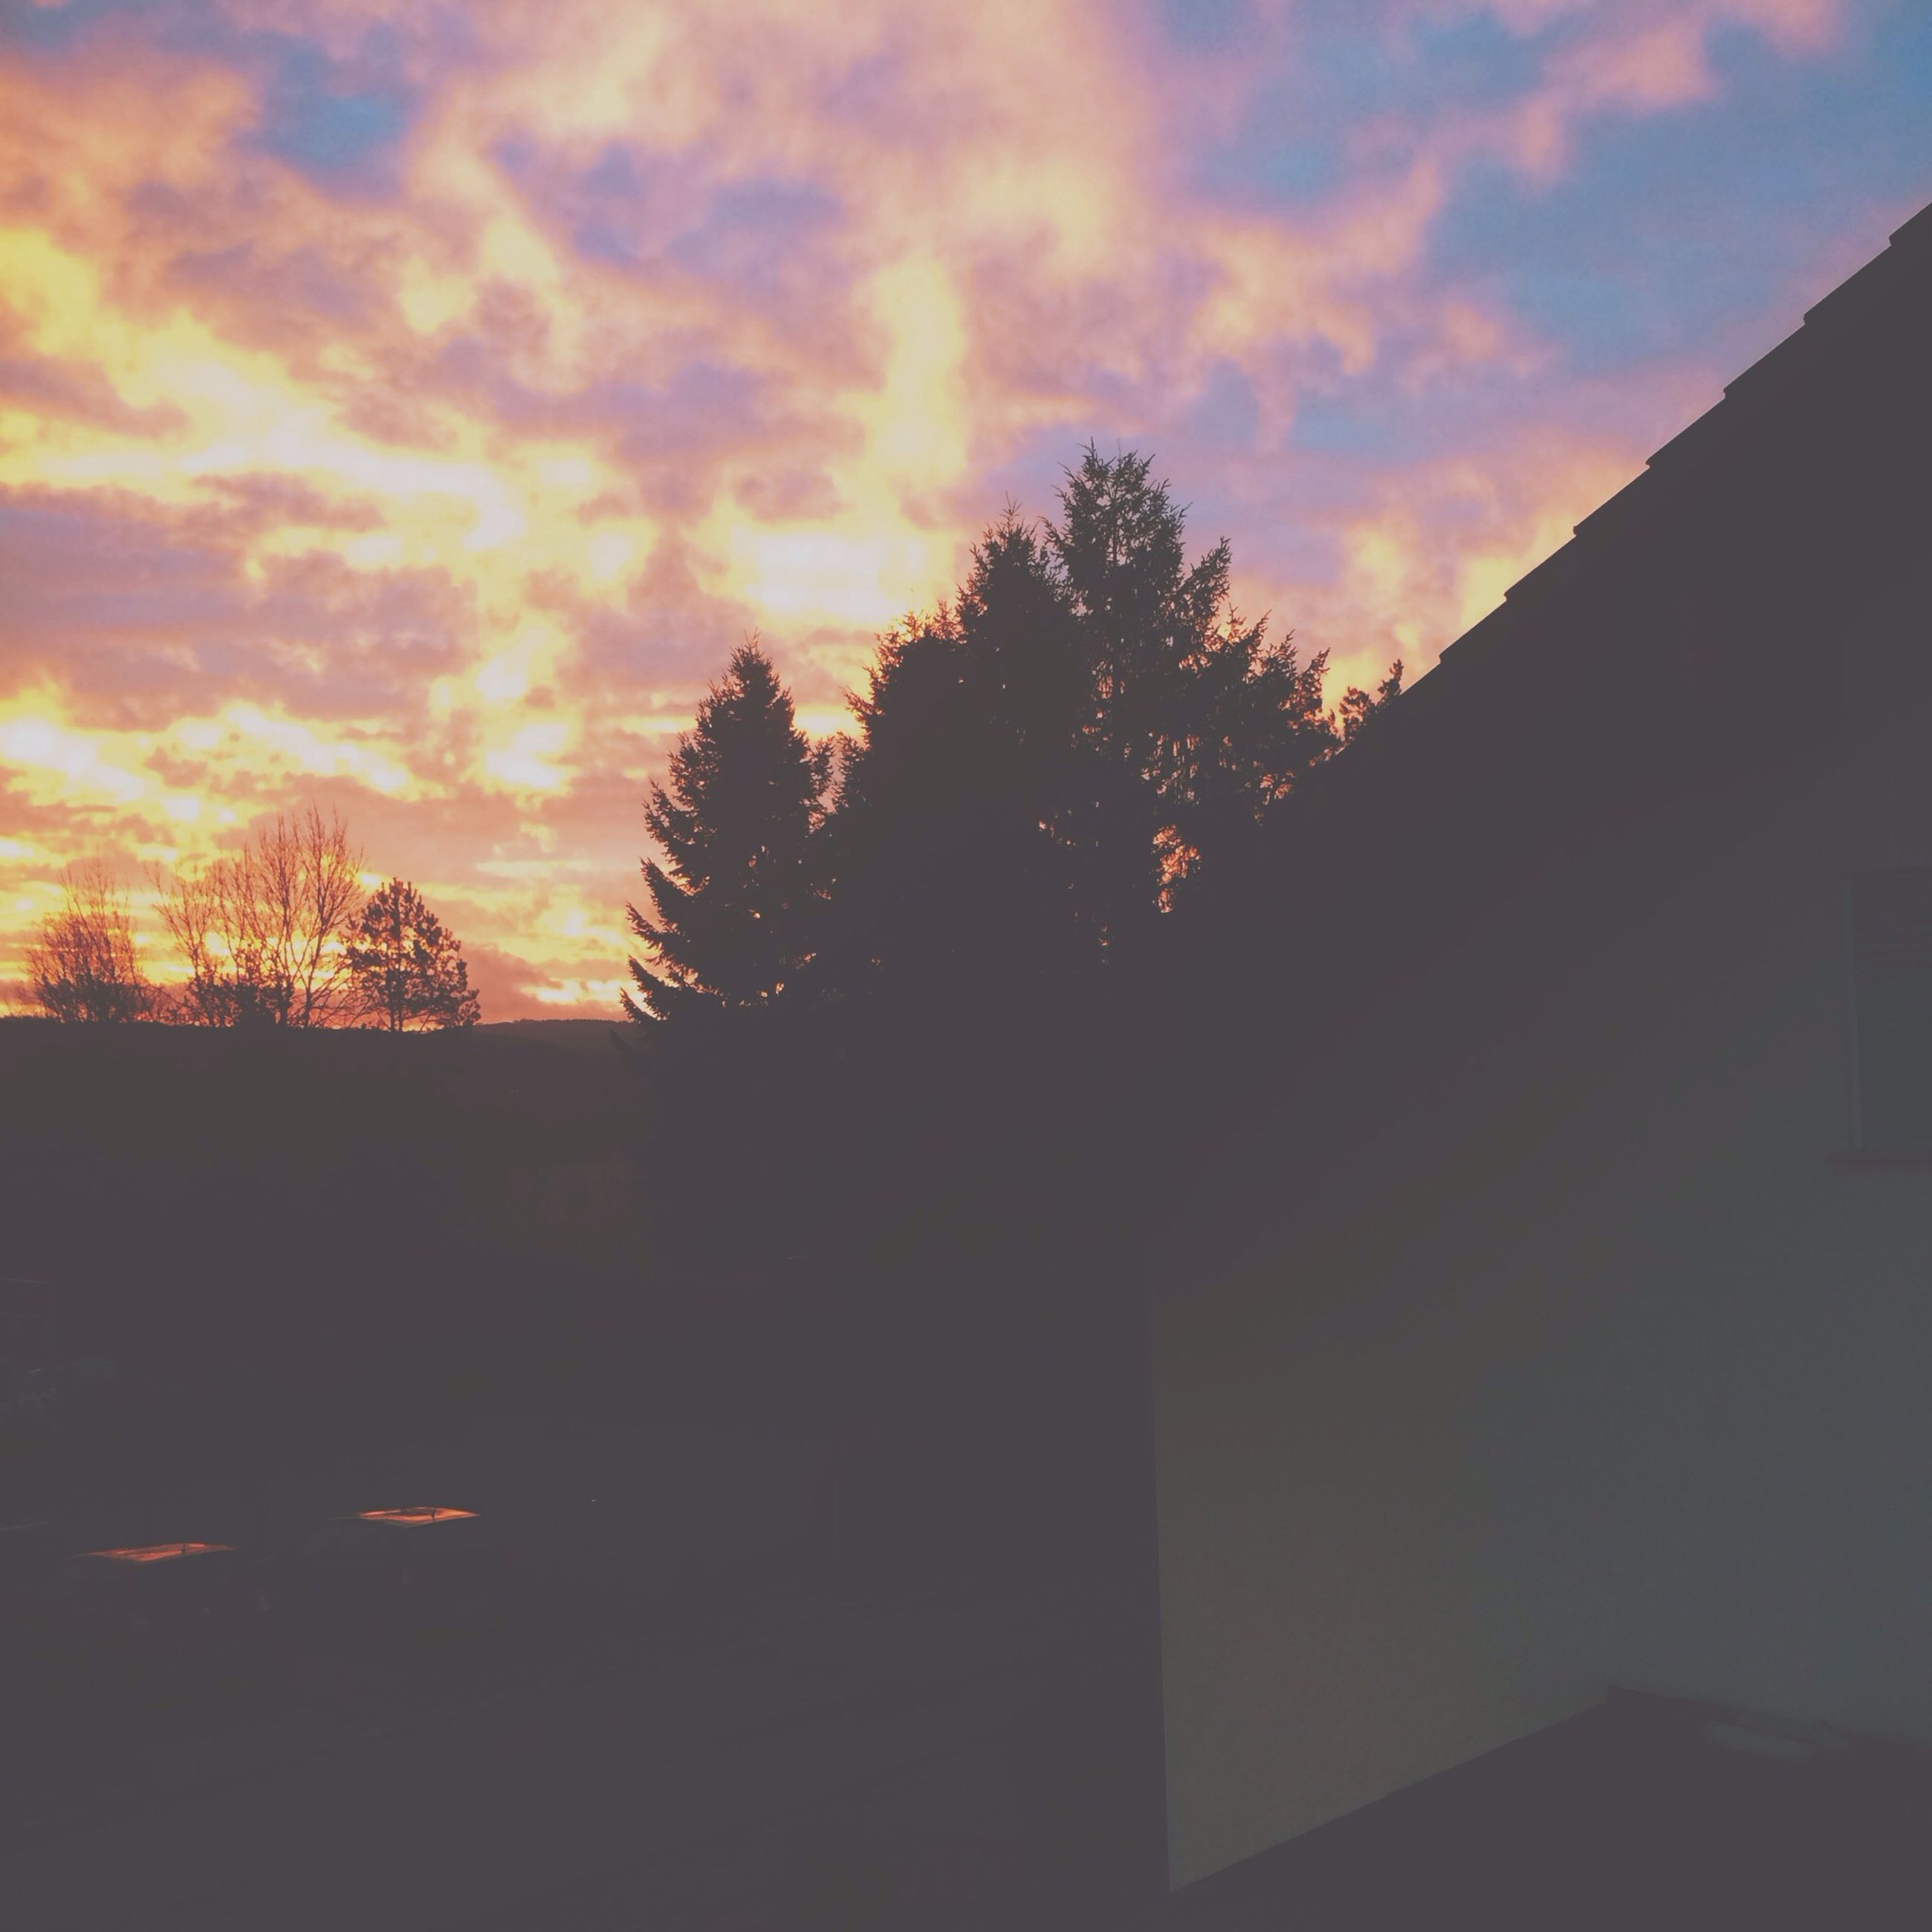 sunset, silhouette, sky, architecture, built structure, building exterior, tree, orange color, cloud - sky, house, nature, beauty in nature, low angle view, cloud, dusk, residential structure, outdoors, tranquility, scenics, no people